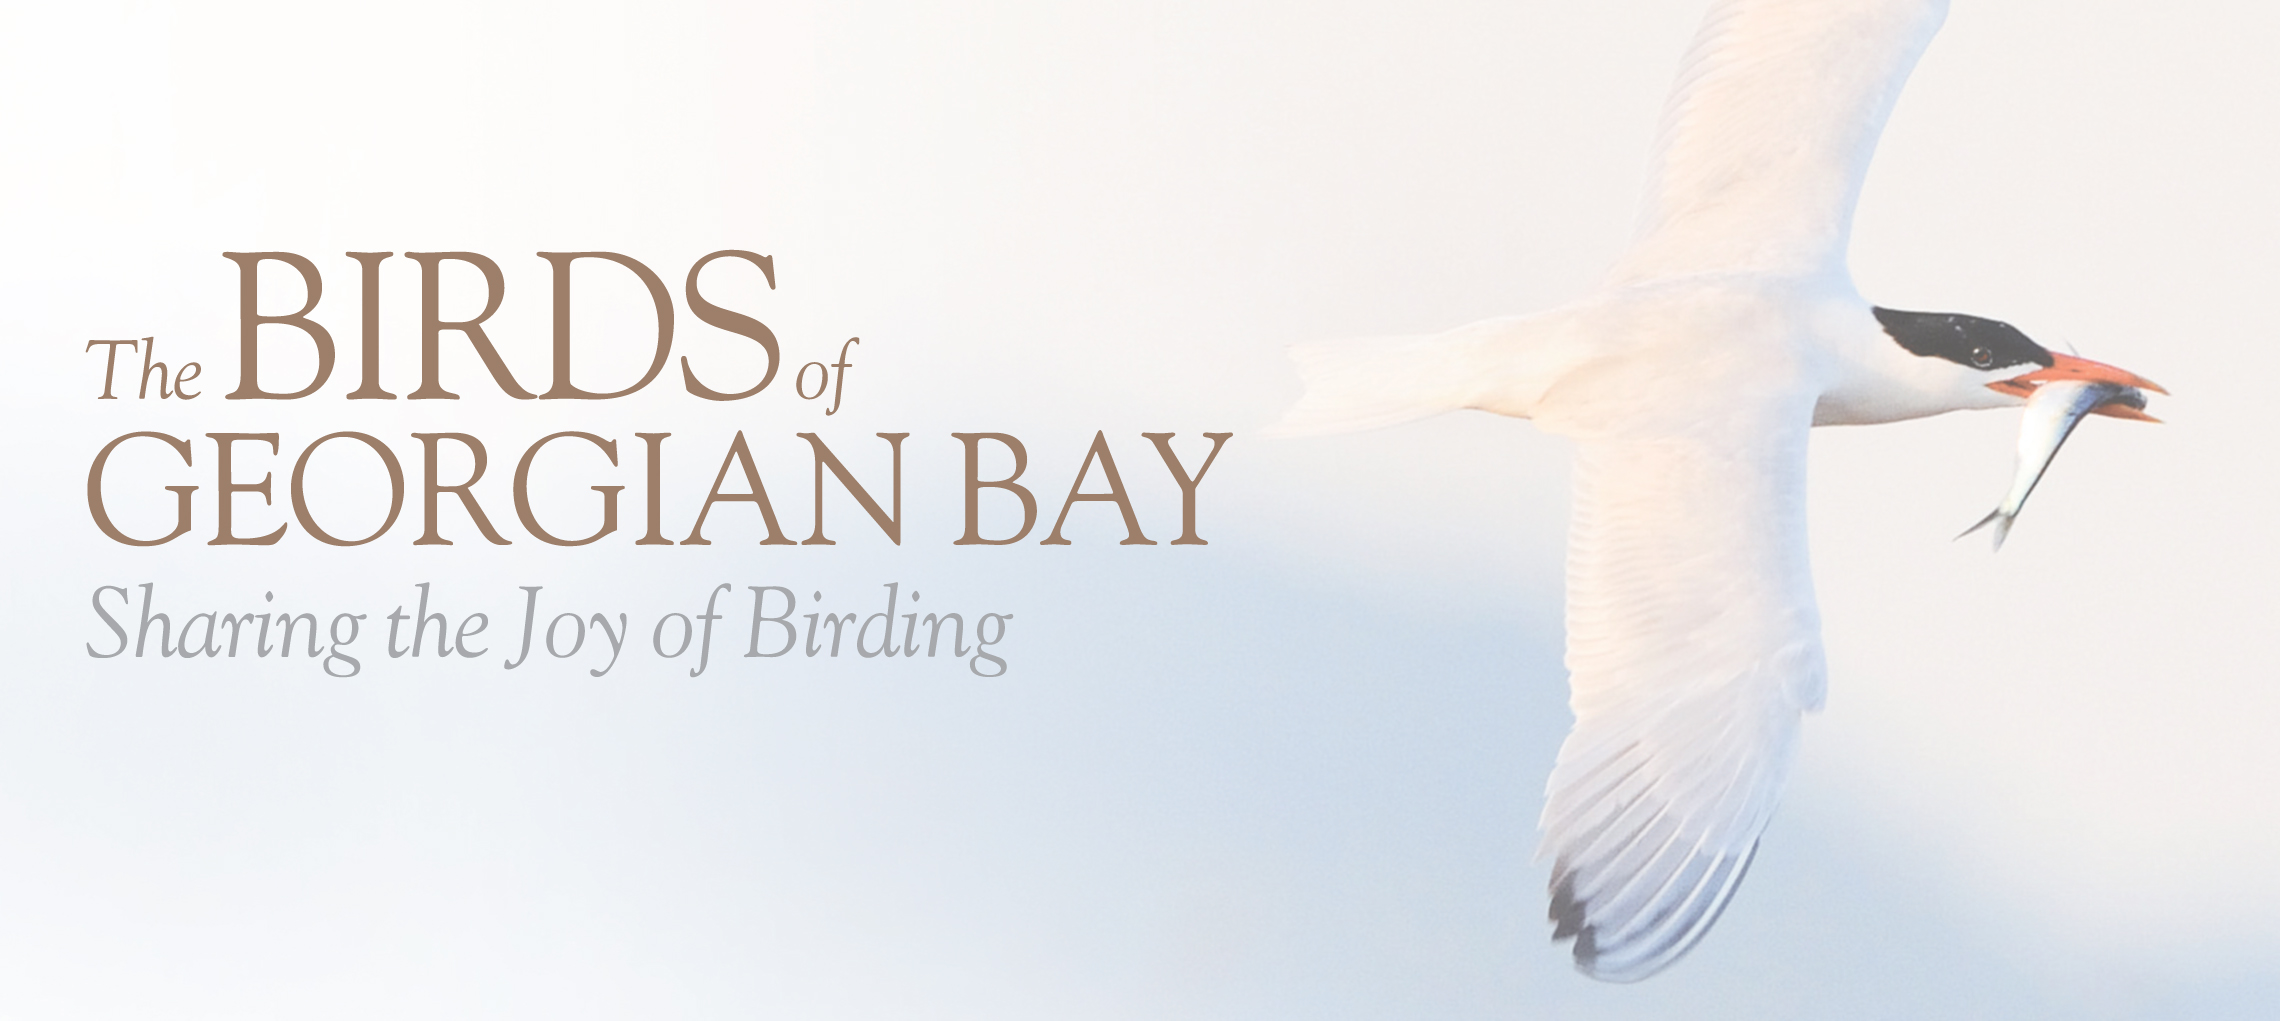 Birds of Georgian Bay